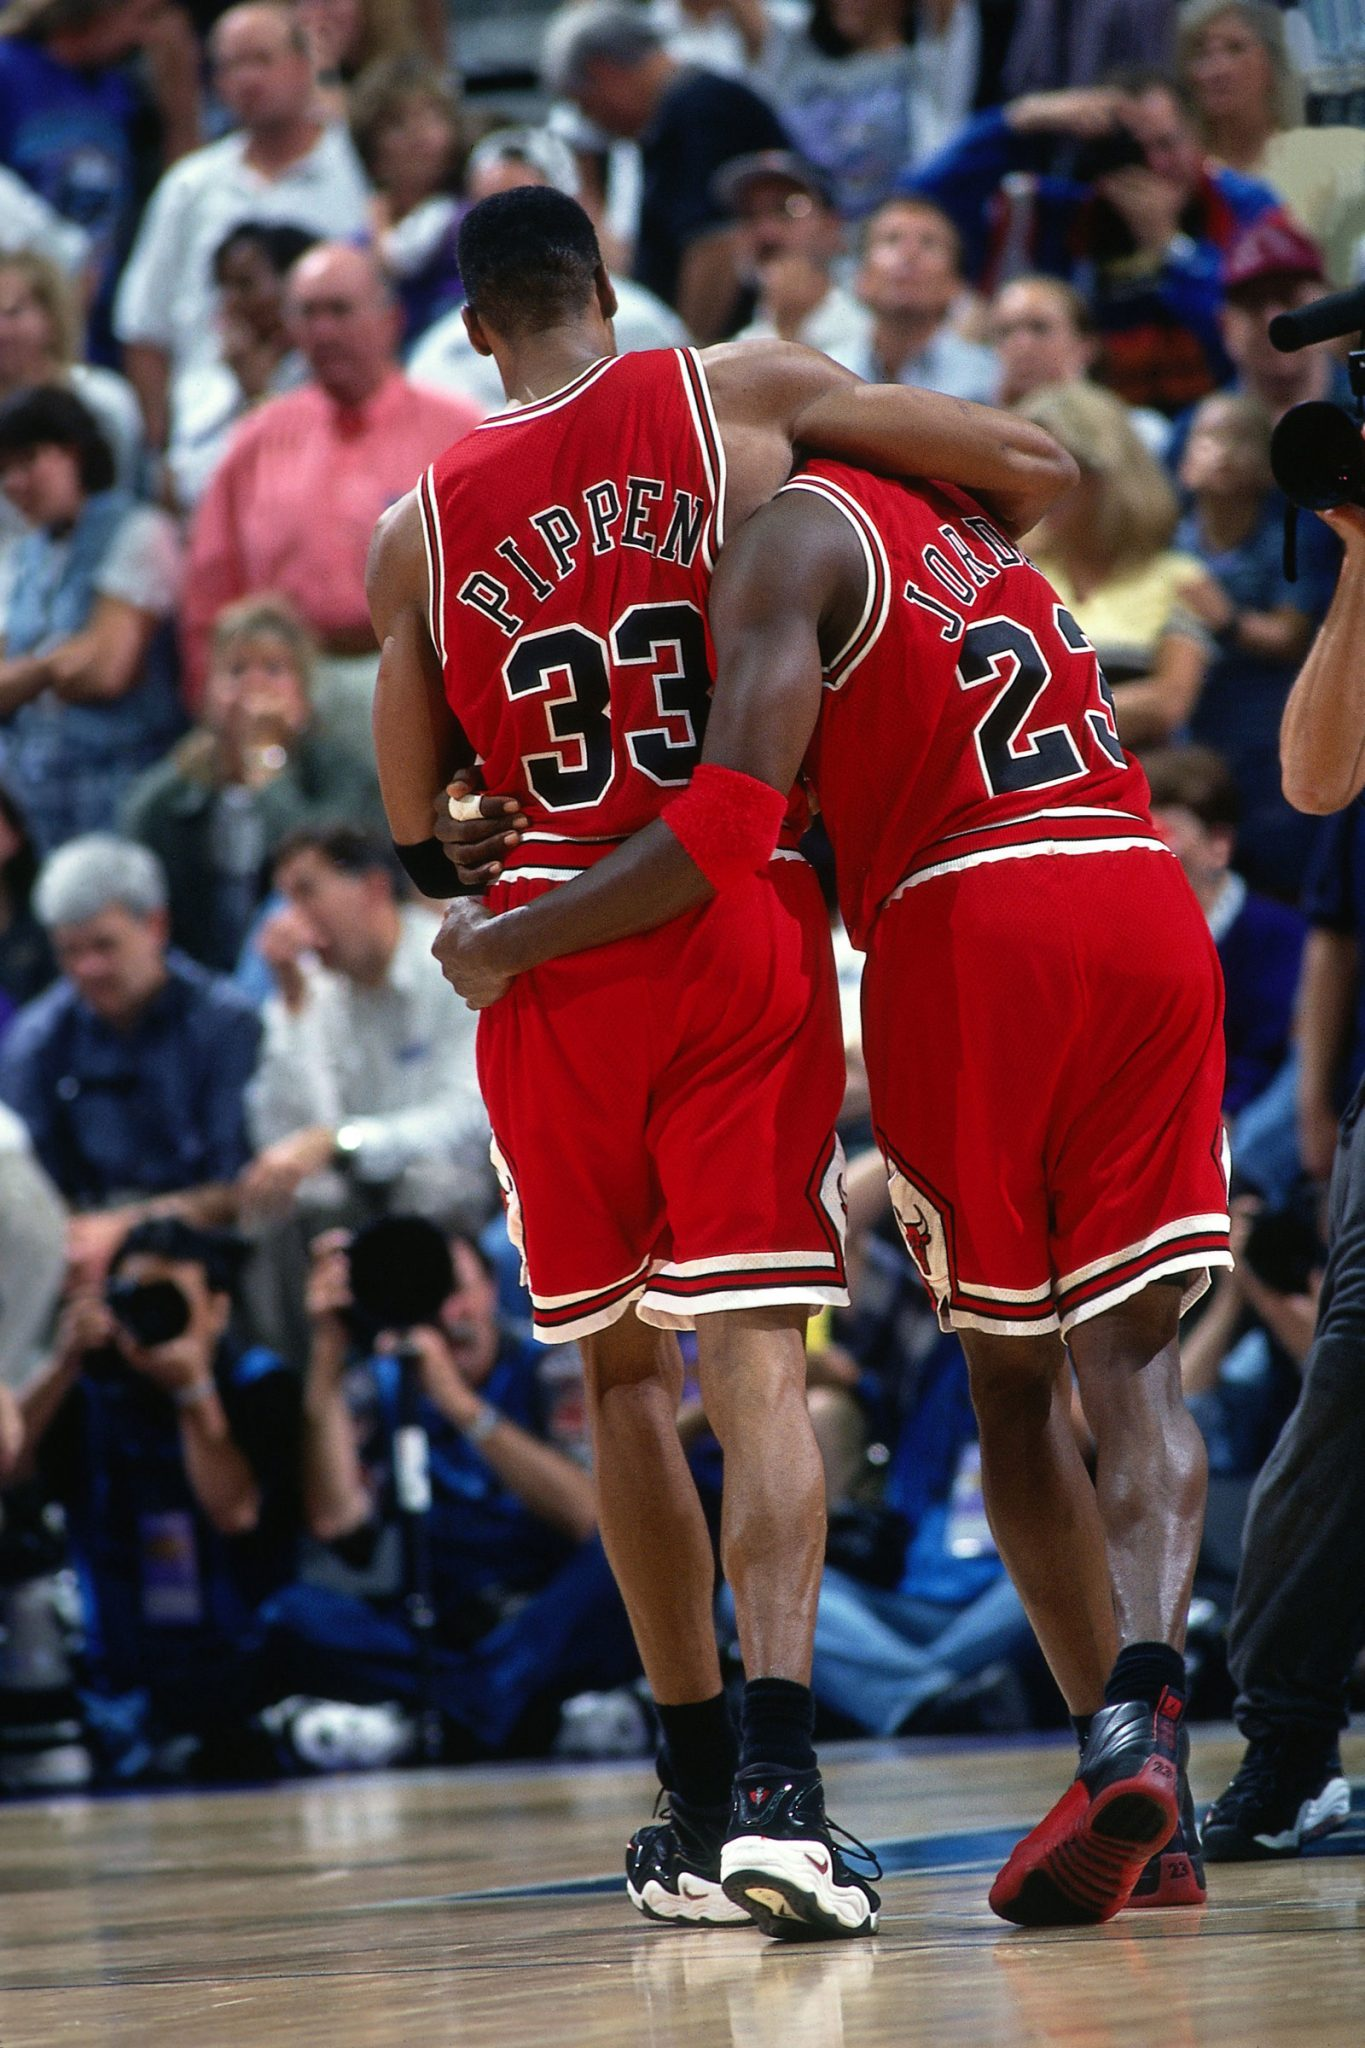 Jordan wasn't even sure he would play when he arrived at the Delta Center, but 38 points and a Bulls' win later, Pippen was there to help him off the court.